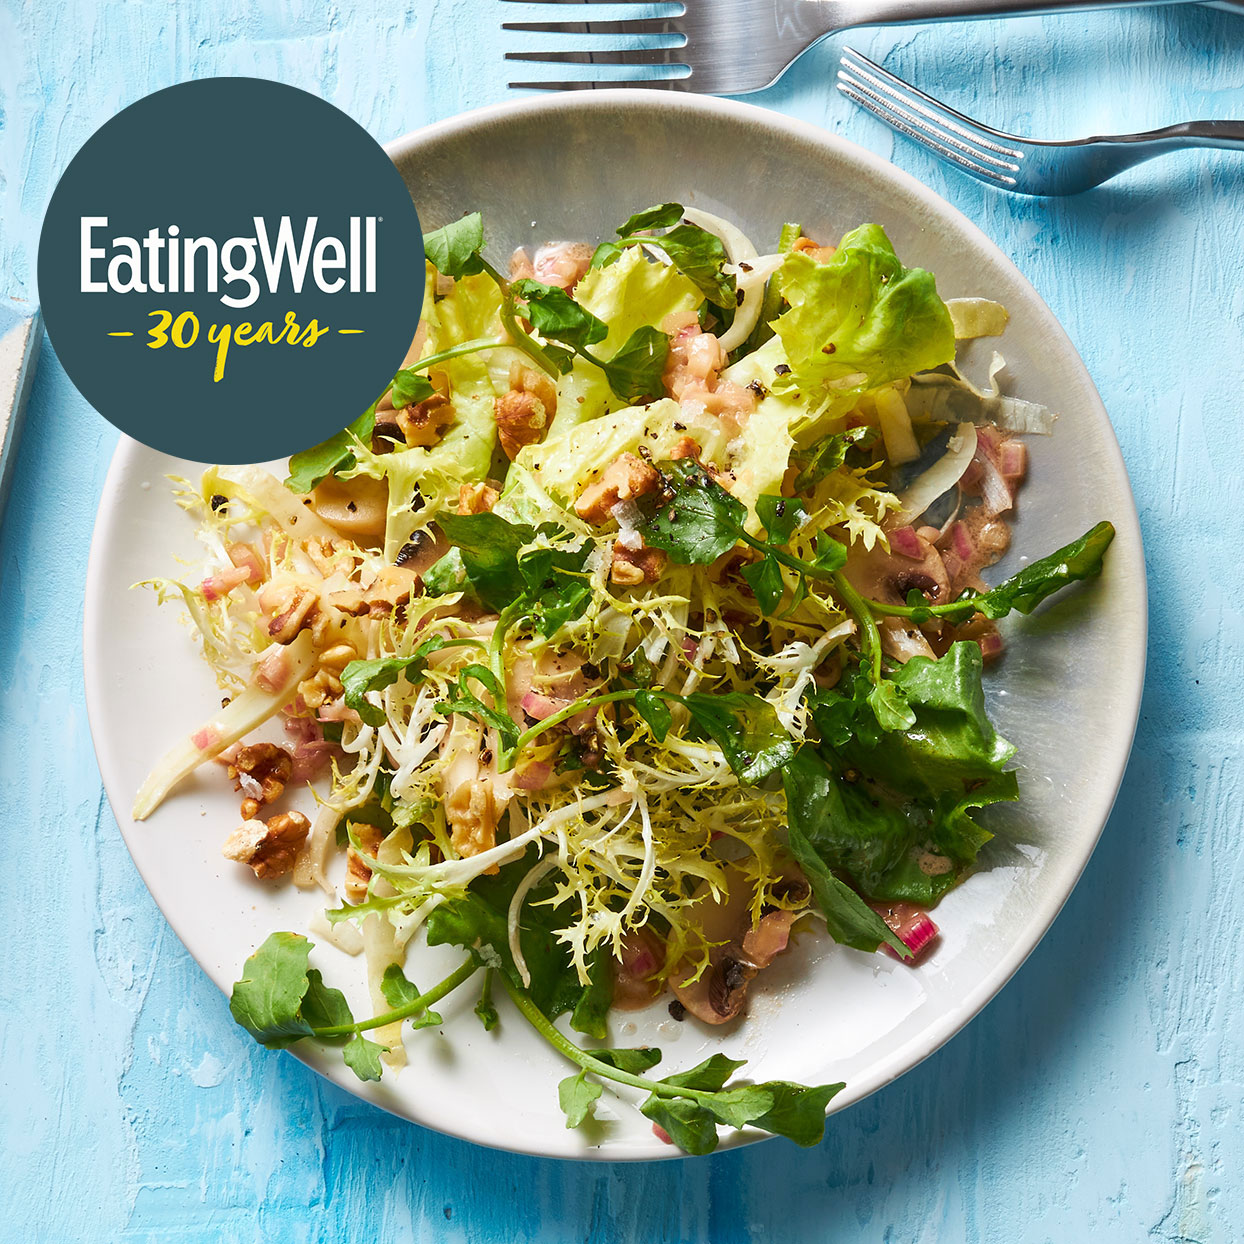 Winter-Salad-with-Toasted-Walnuts